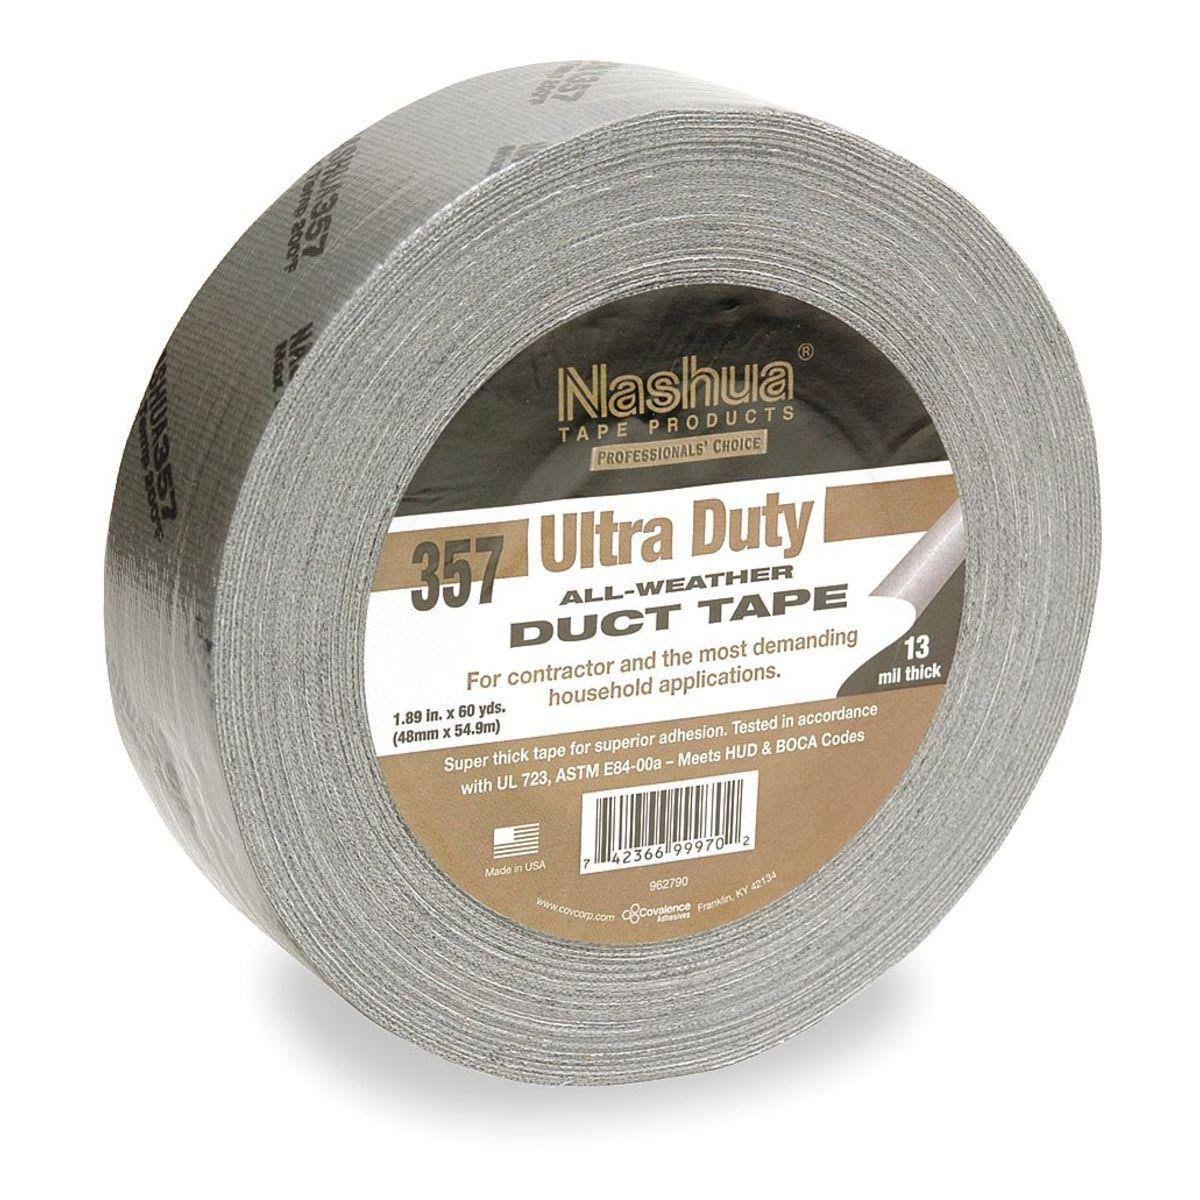 Nashua 357 All-Weather Duct Tape